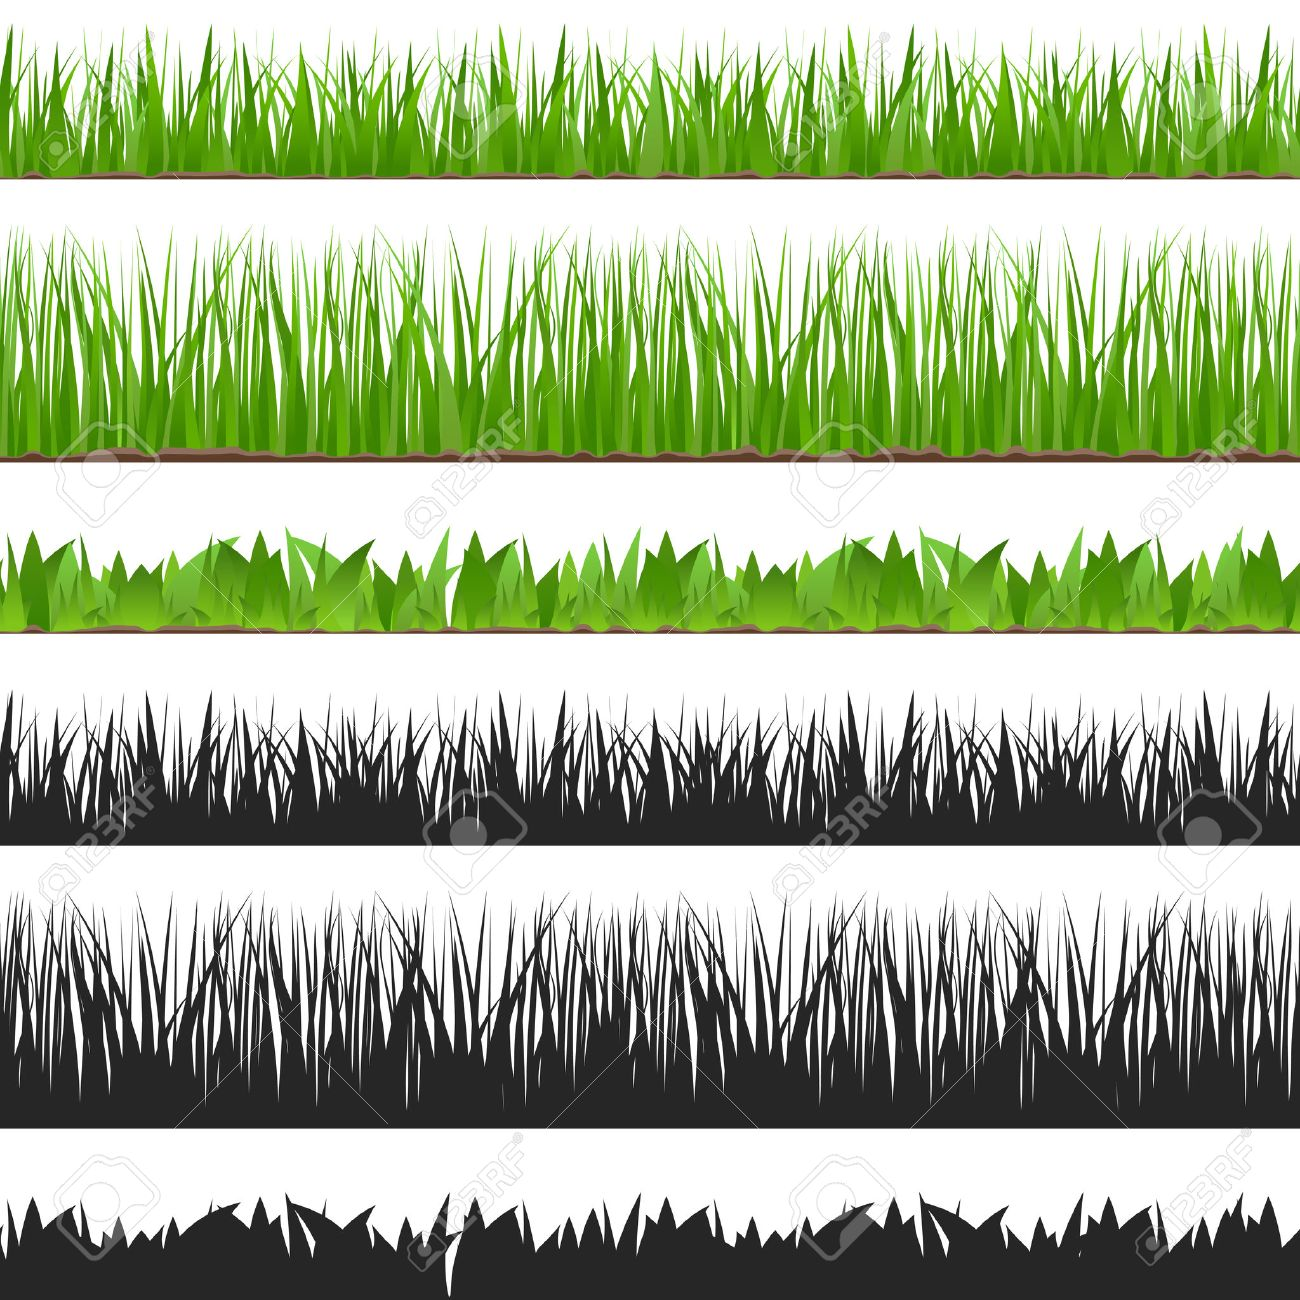 Seamless grass and its silhouette - 47616009